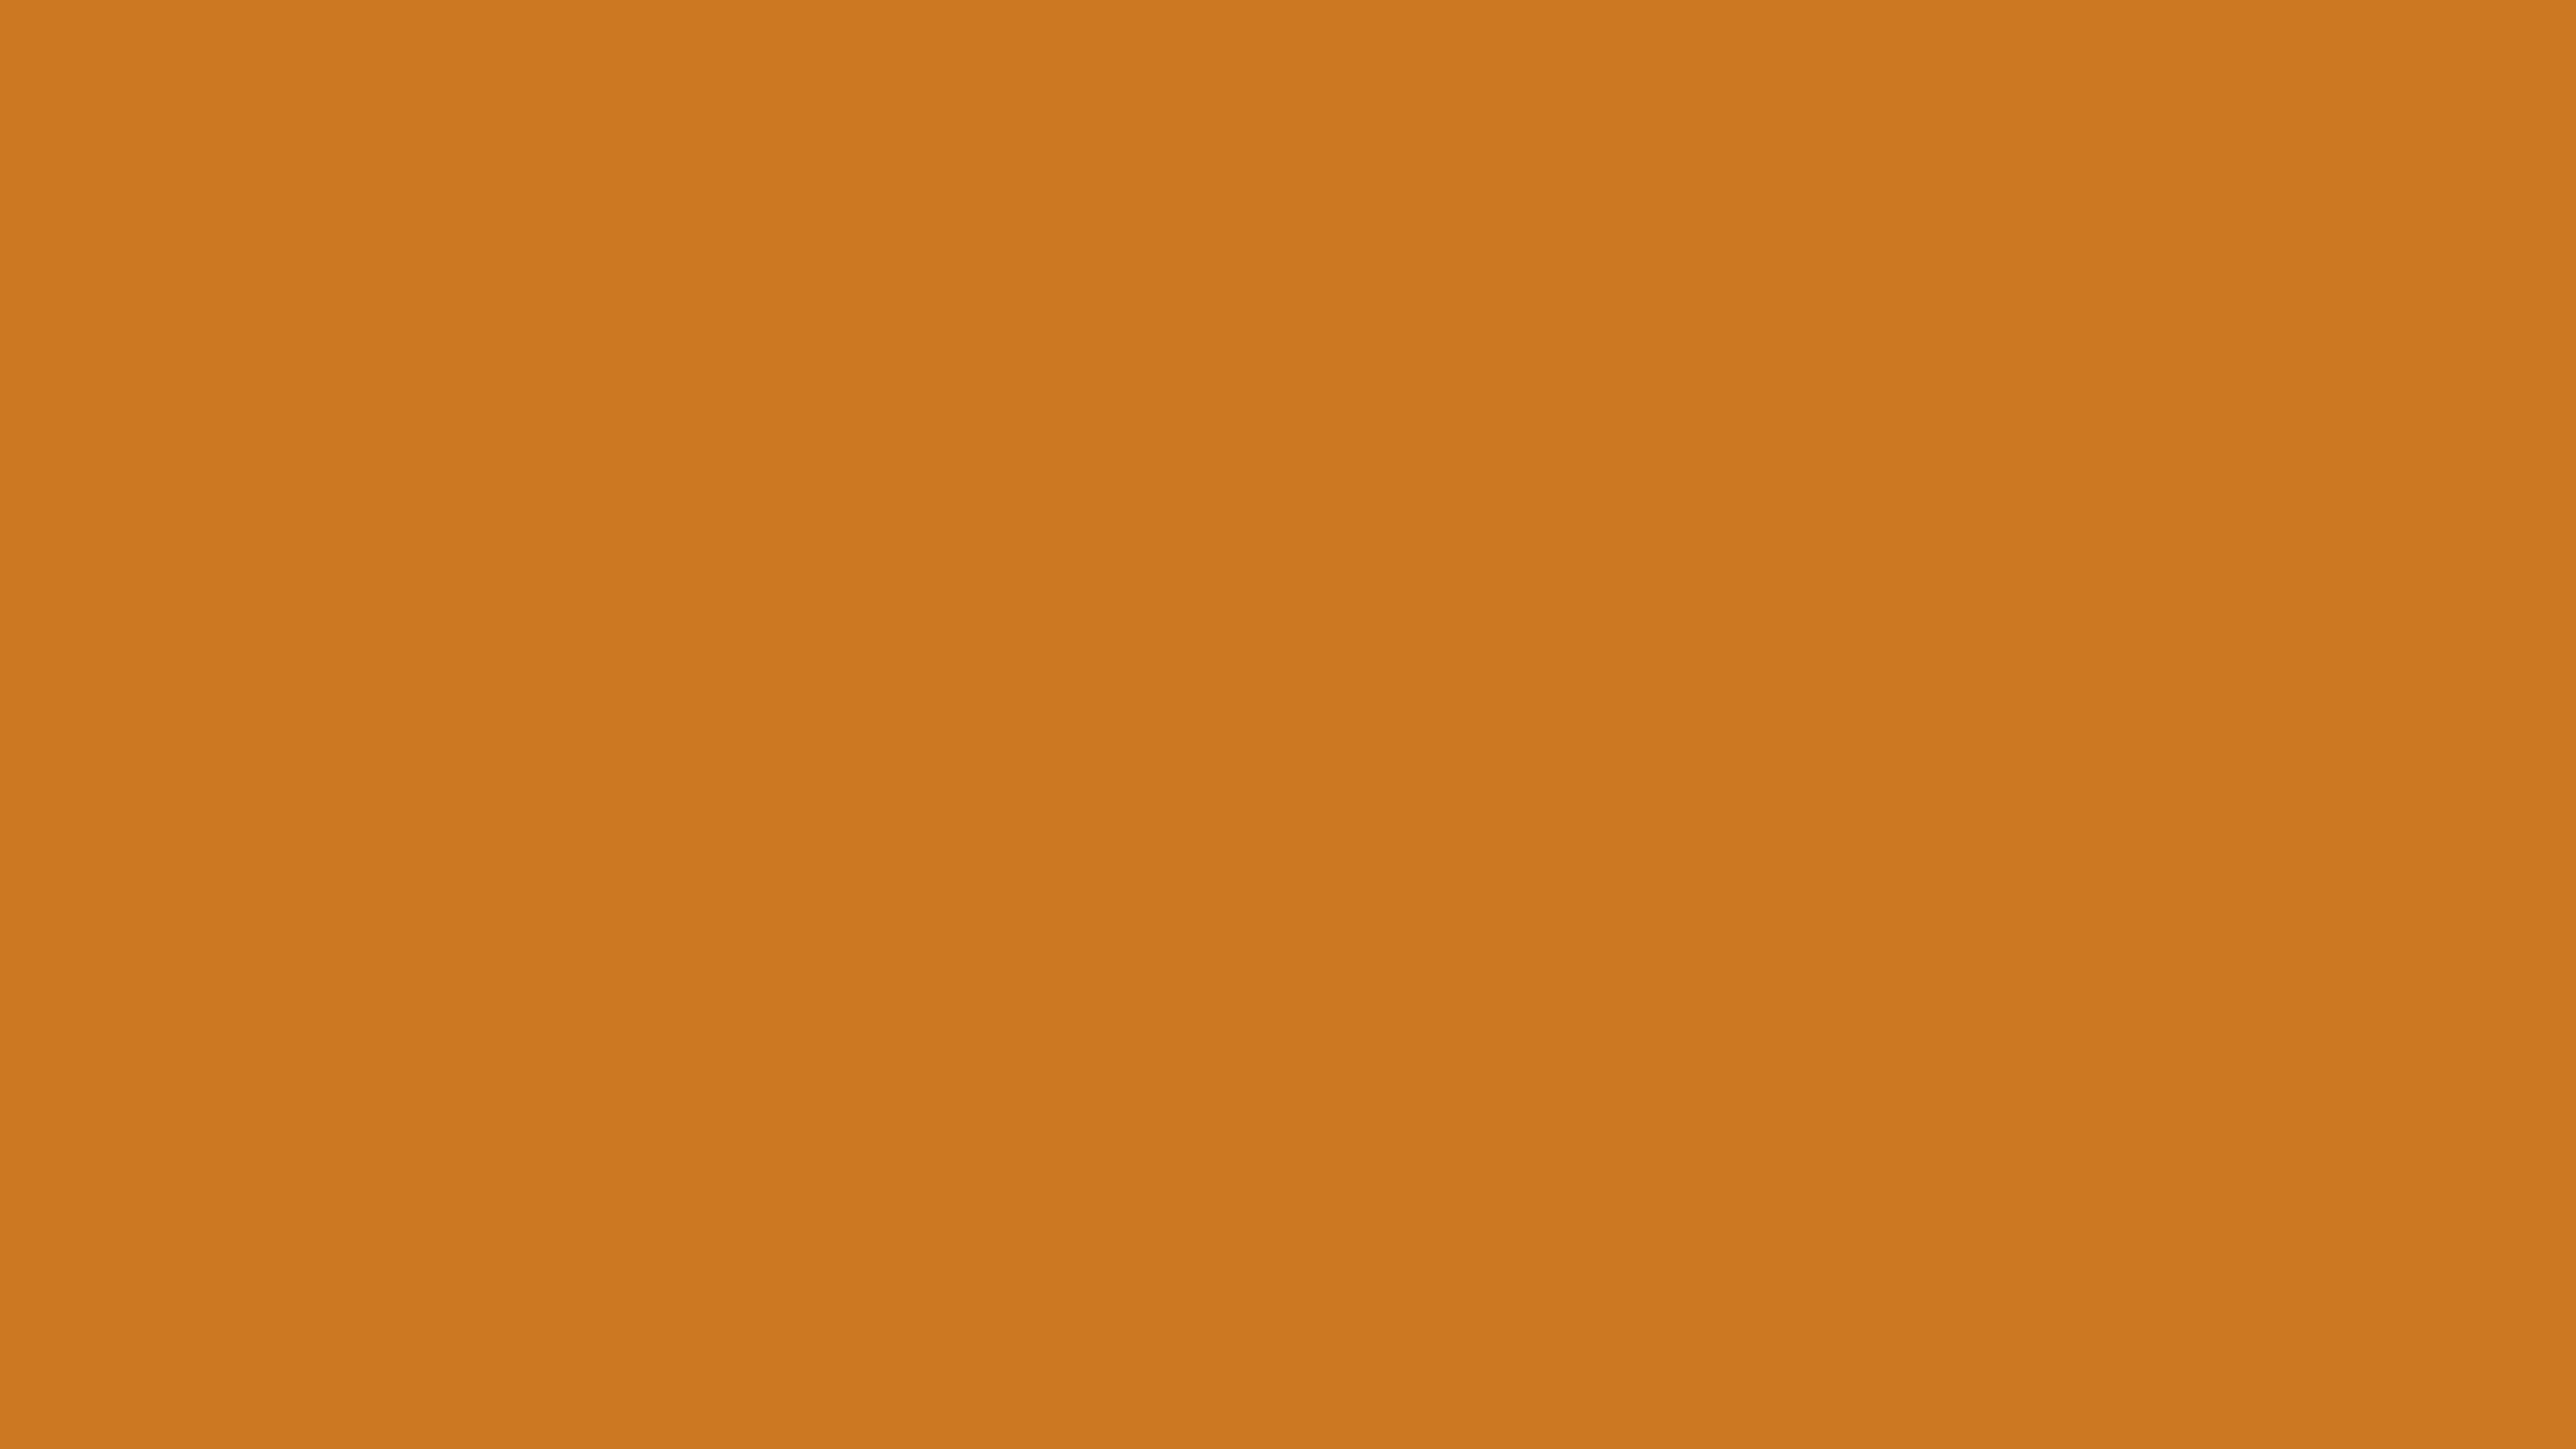 5120x2880 Ochre Solid Color Background